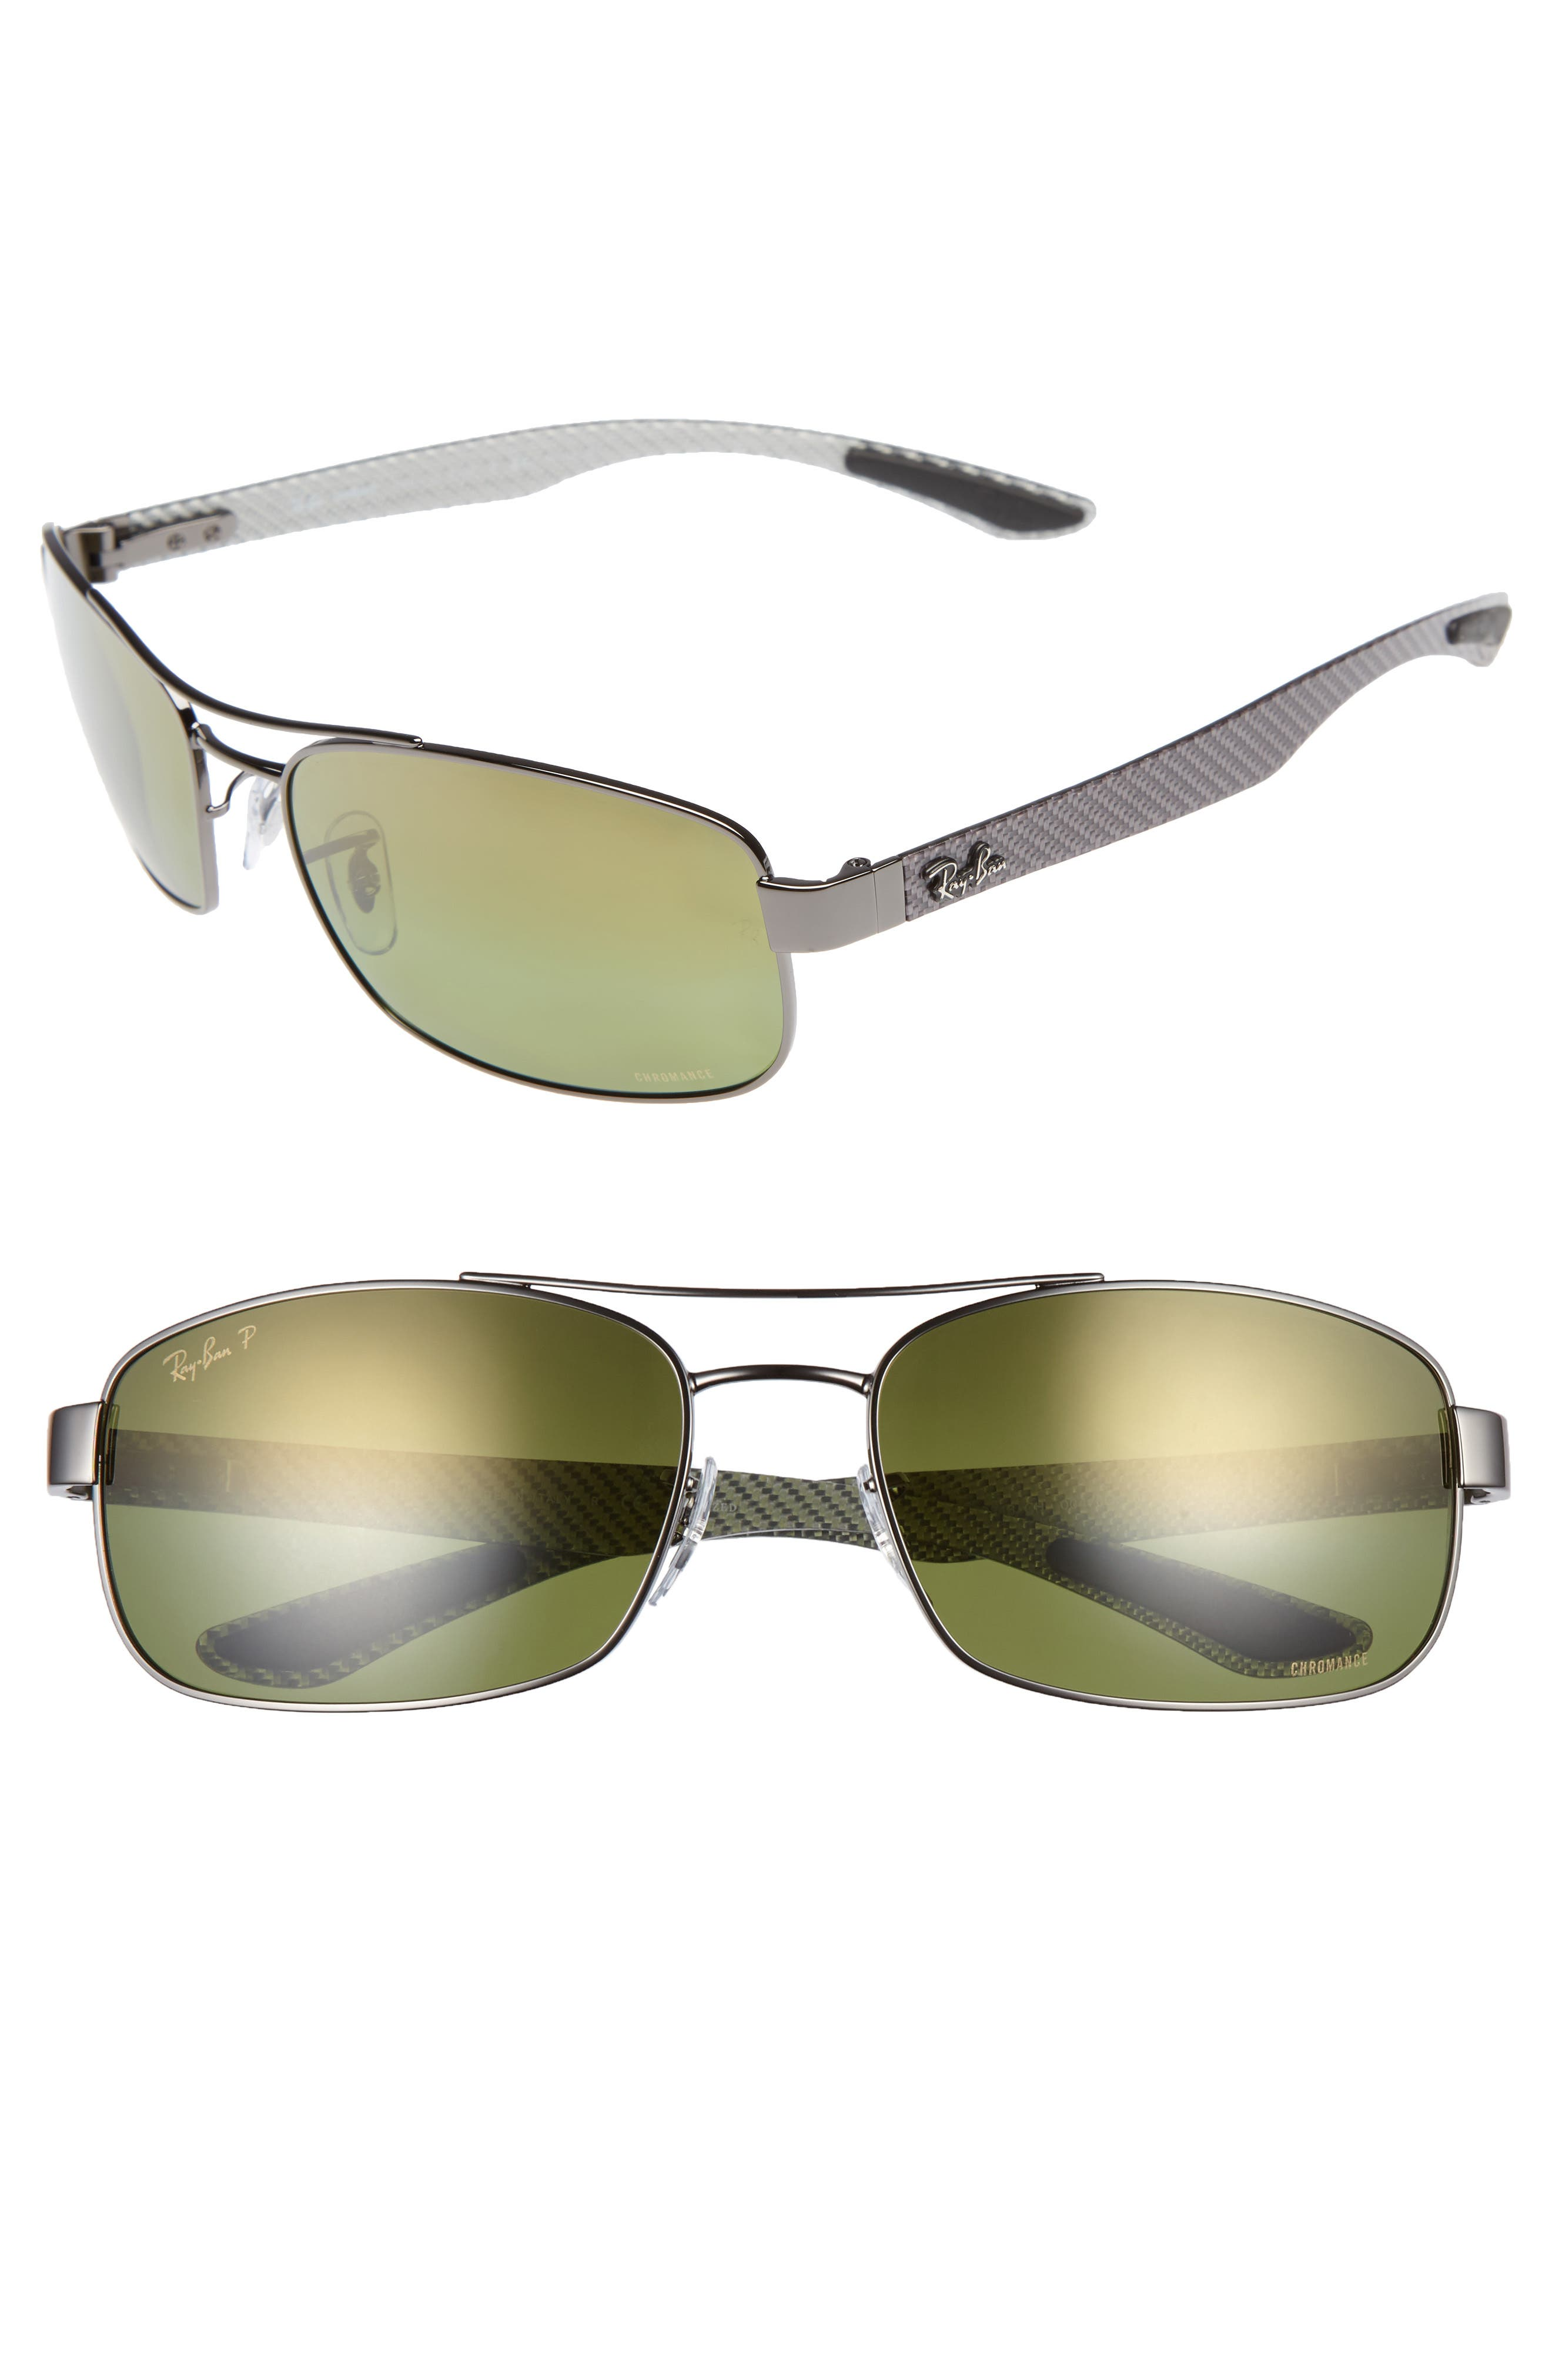 Ray-Ban Chromance 62mm Polarized Sunglasses